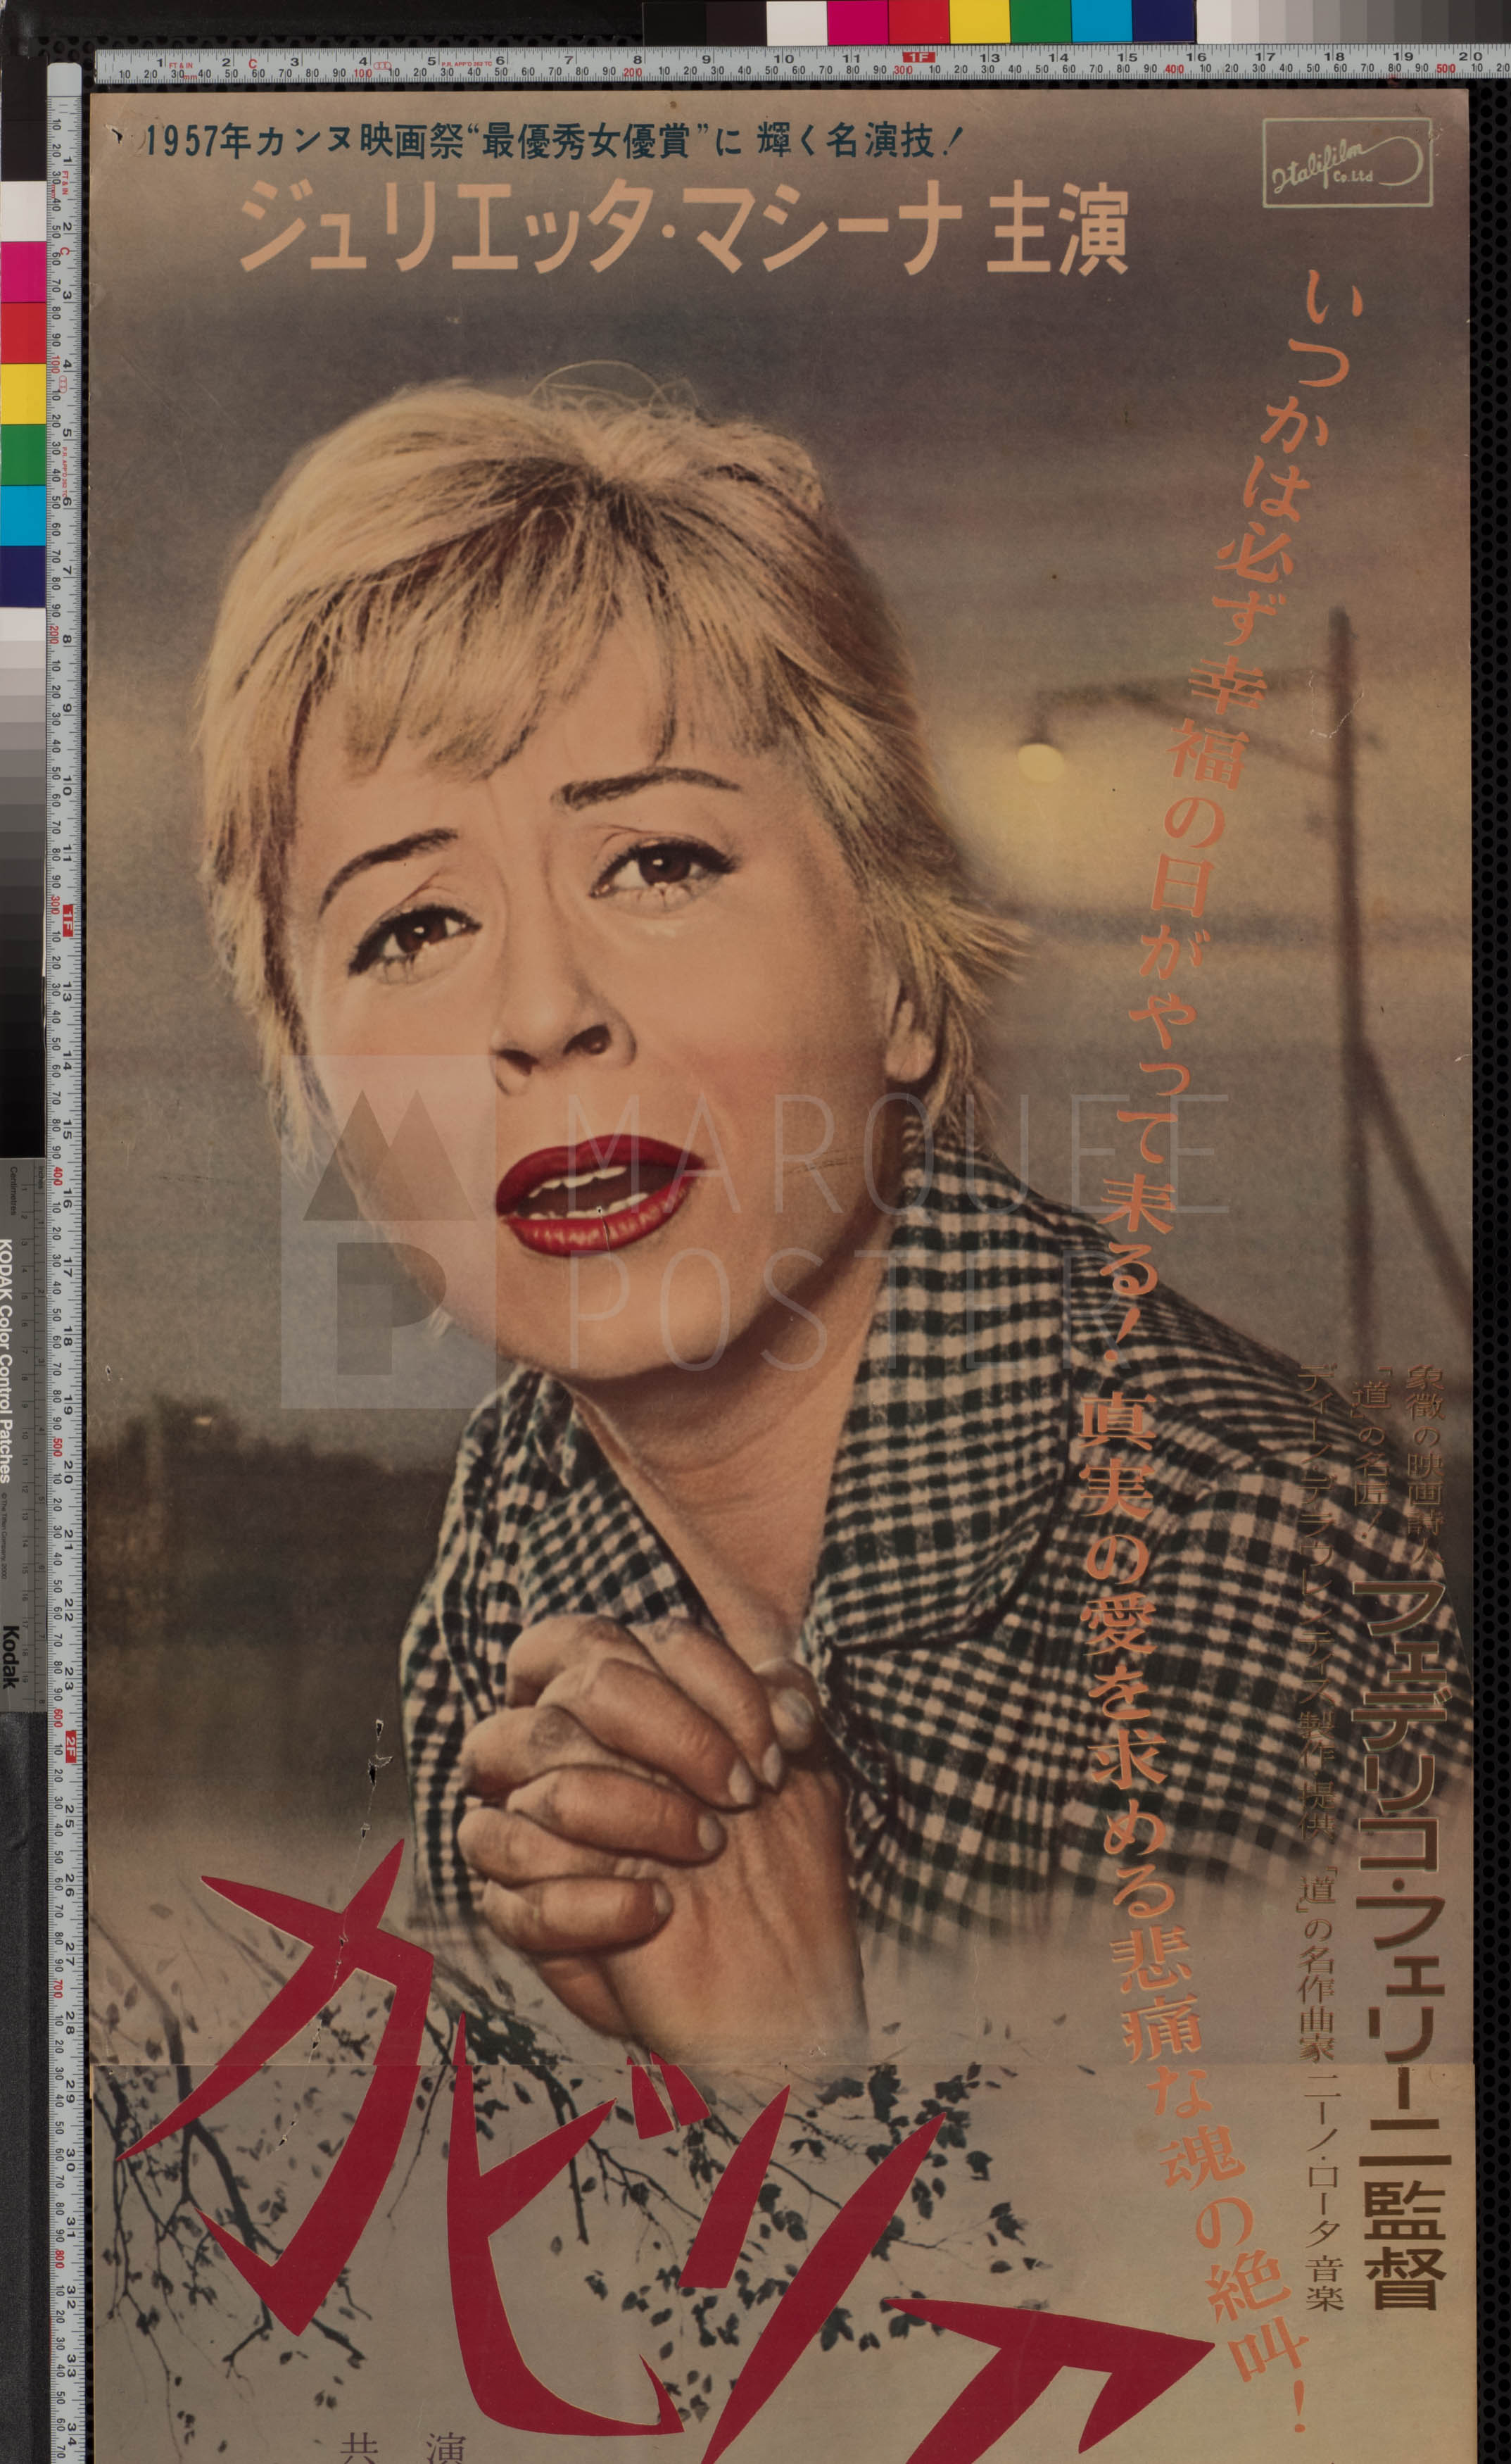 42-nights-of-cabiria-japanese-stb-1957-02